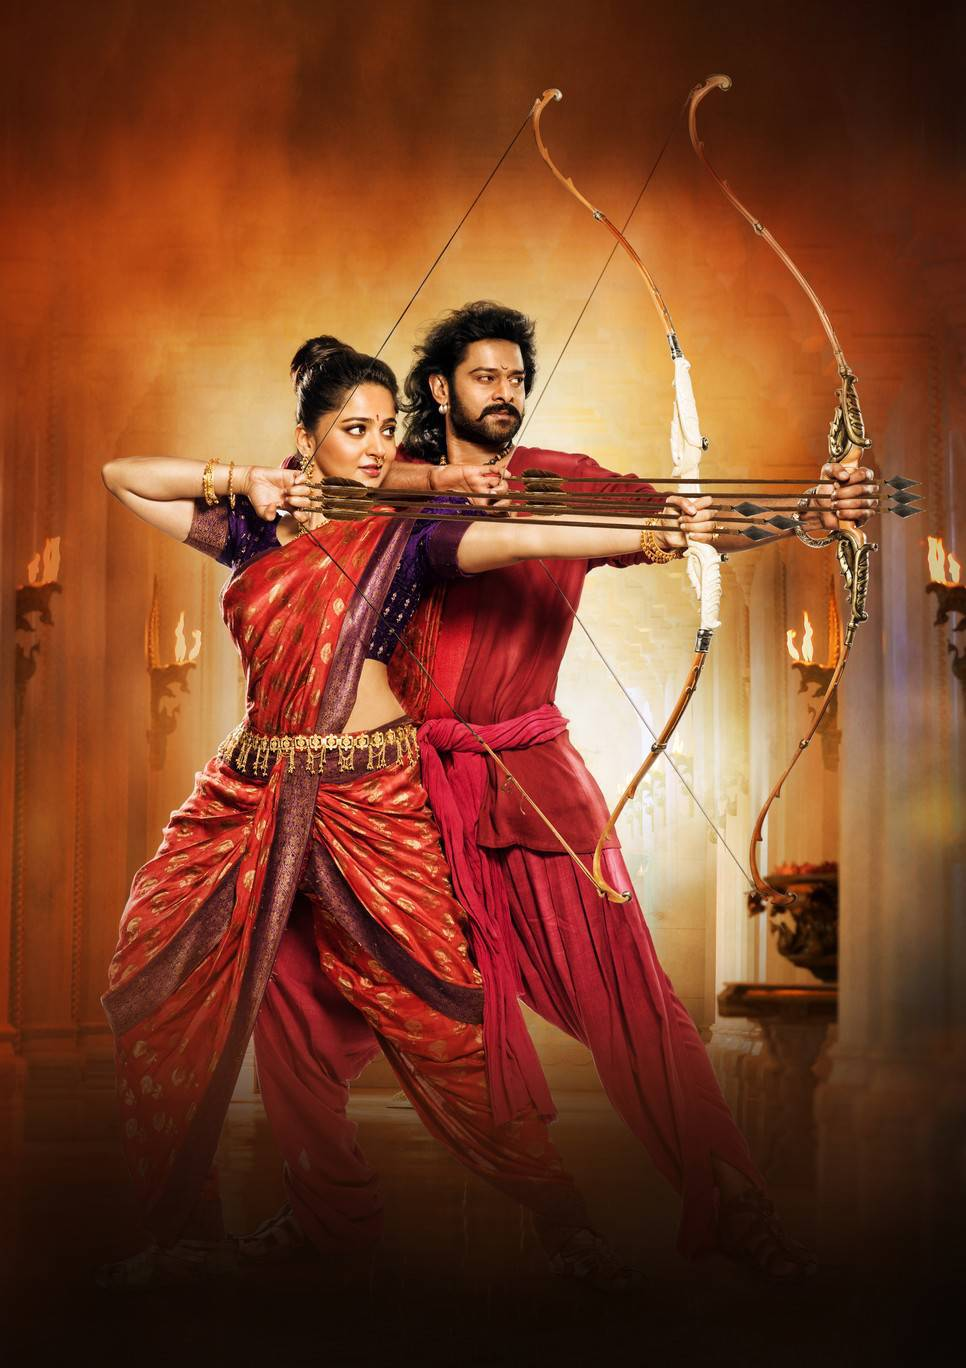 Prabhas And Anushka Baahubali 2 Movie Latest Stills